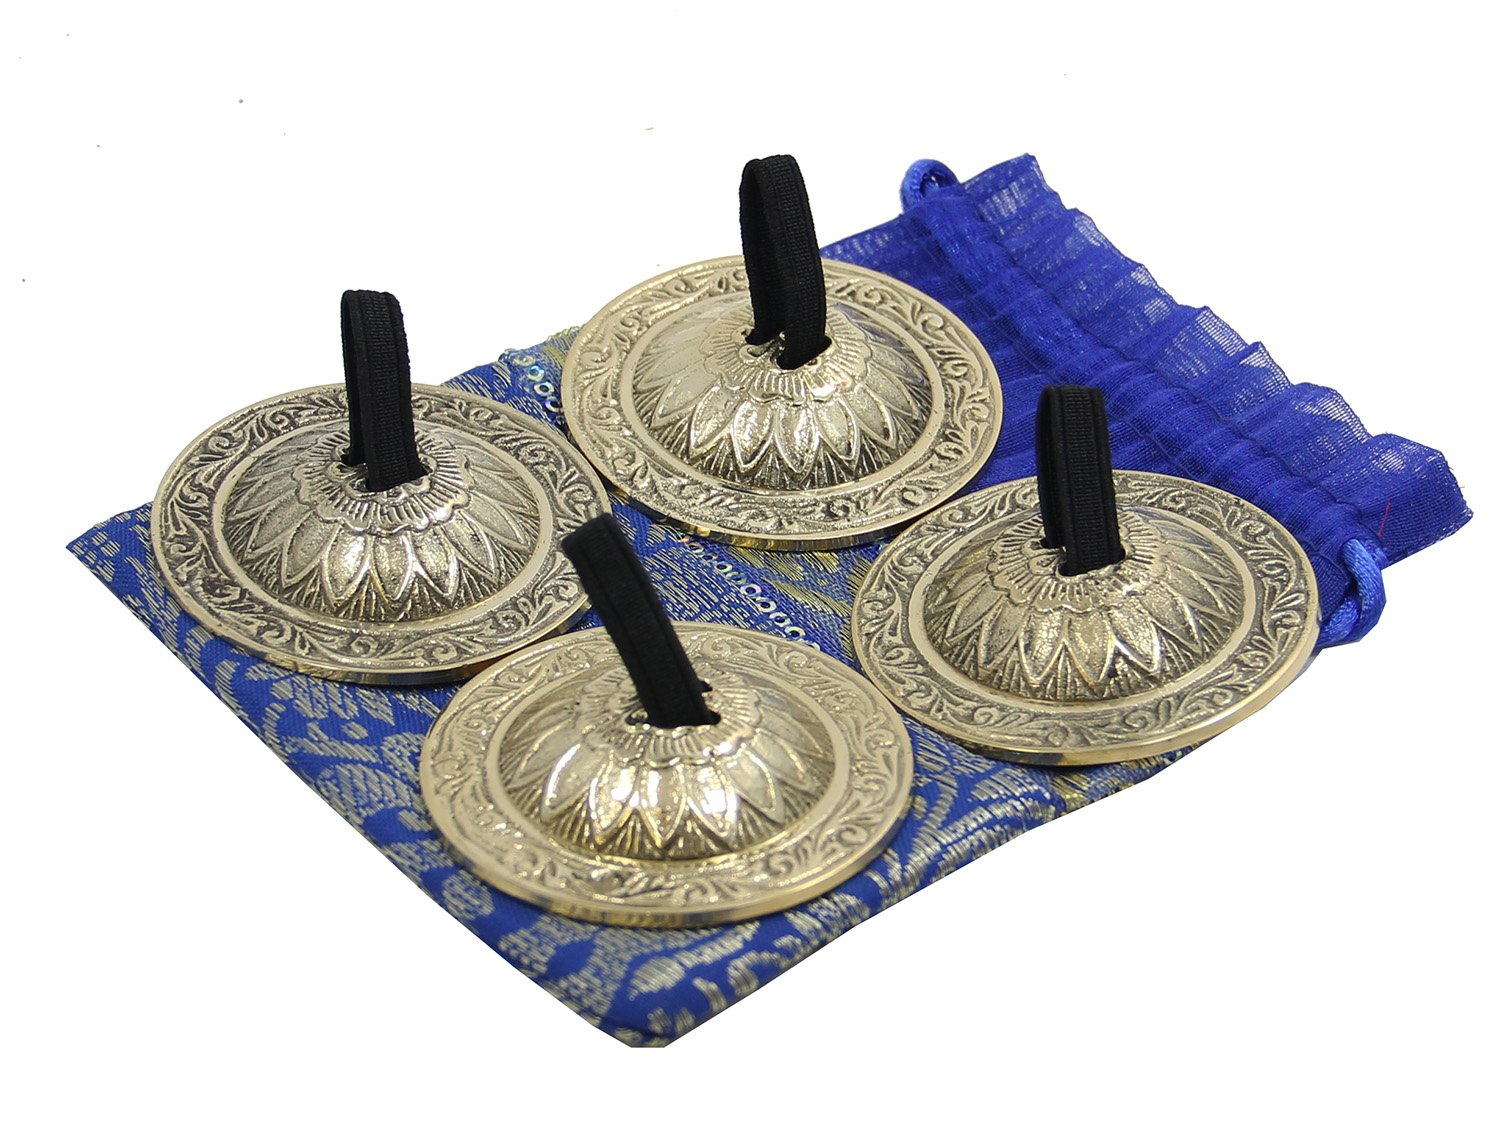 Dharma Objects 2 Pairs Brass Finger Cymbals Zills for Belly Dancing by Lungta Imports